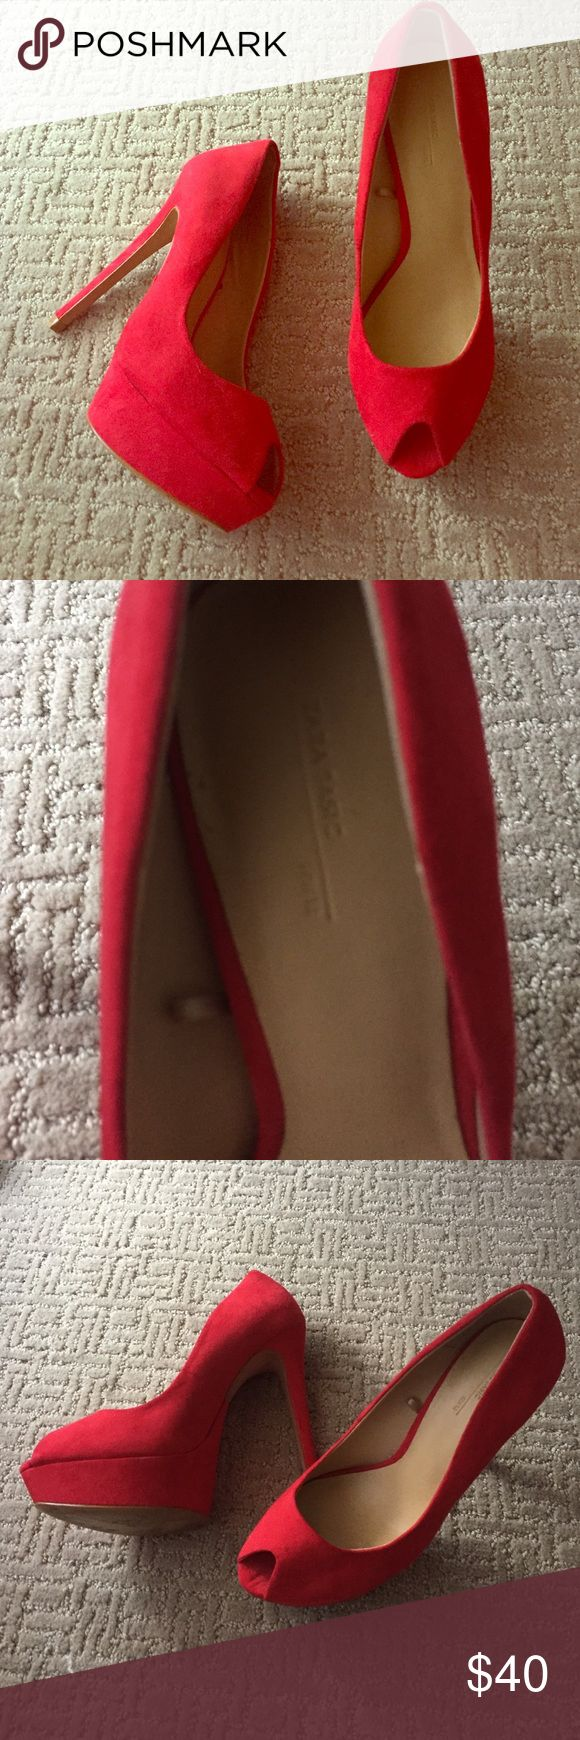 Red Zara Heels Bright red Zara Heels! Bottoms show some wear but the rest of the shoe is in perfect condition. Perfect for a night out! Zara Shoes Heels